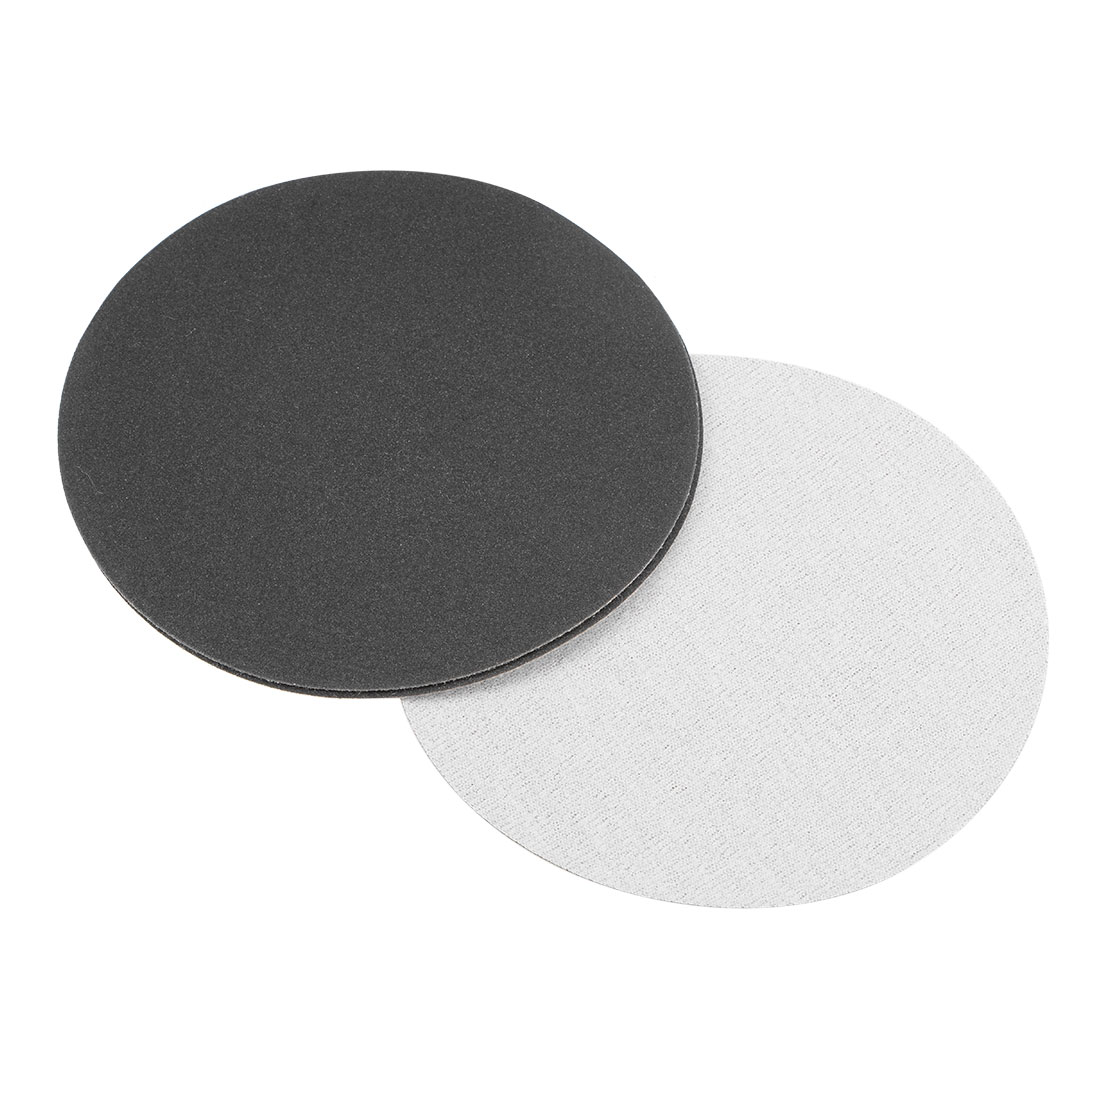 5 inch Wet Dry Discs 240 Grit Hook and Loop Sanding Disc Silicon Carbide 3pcs